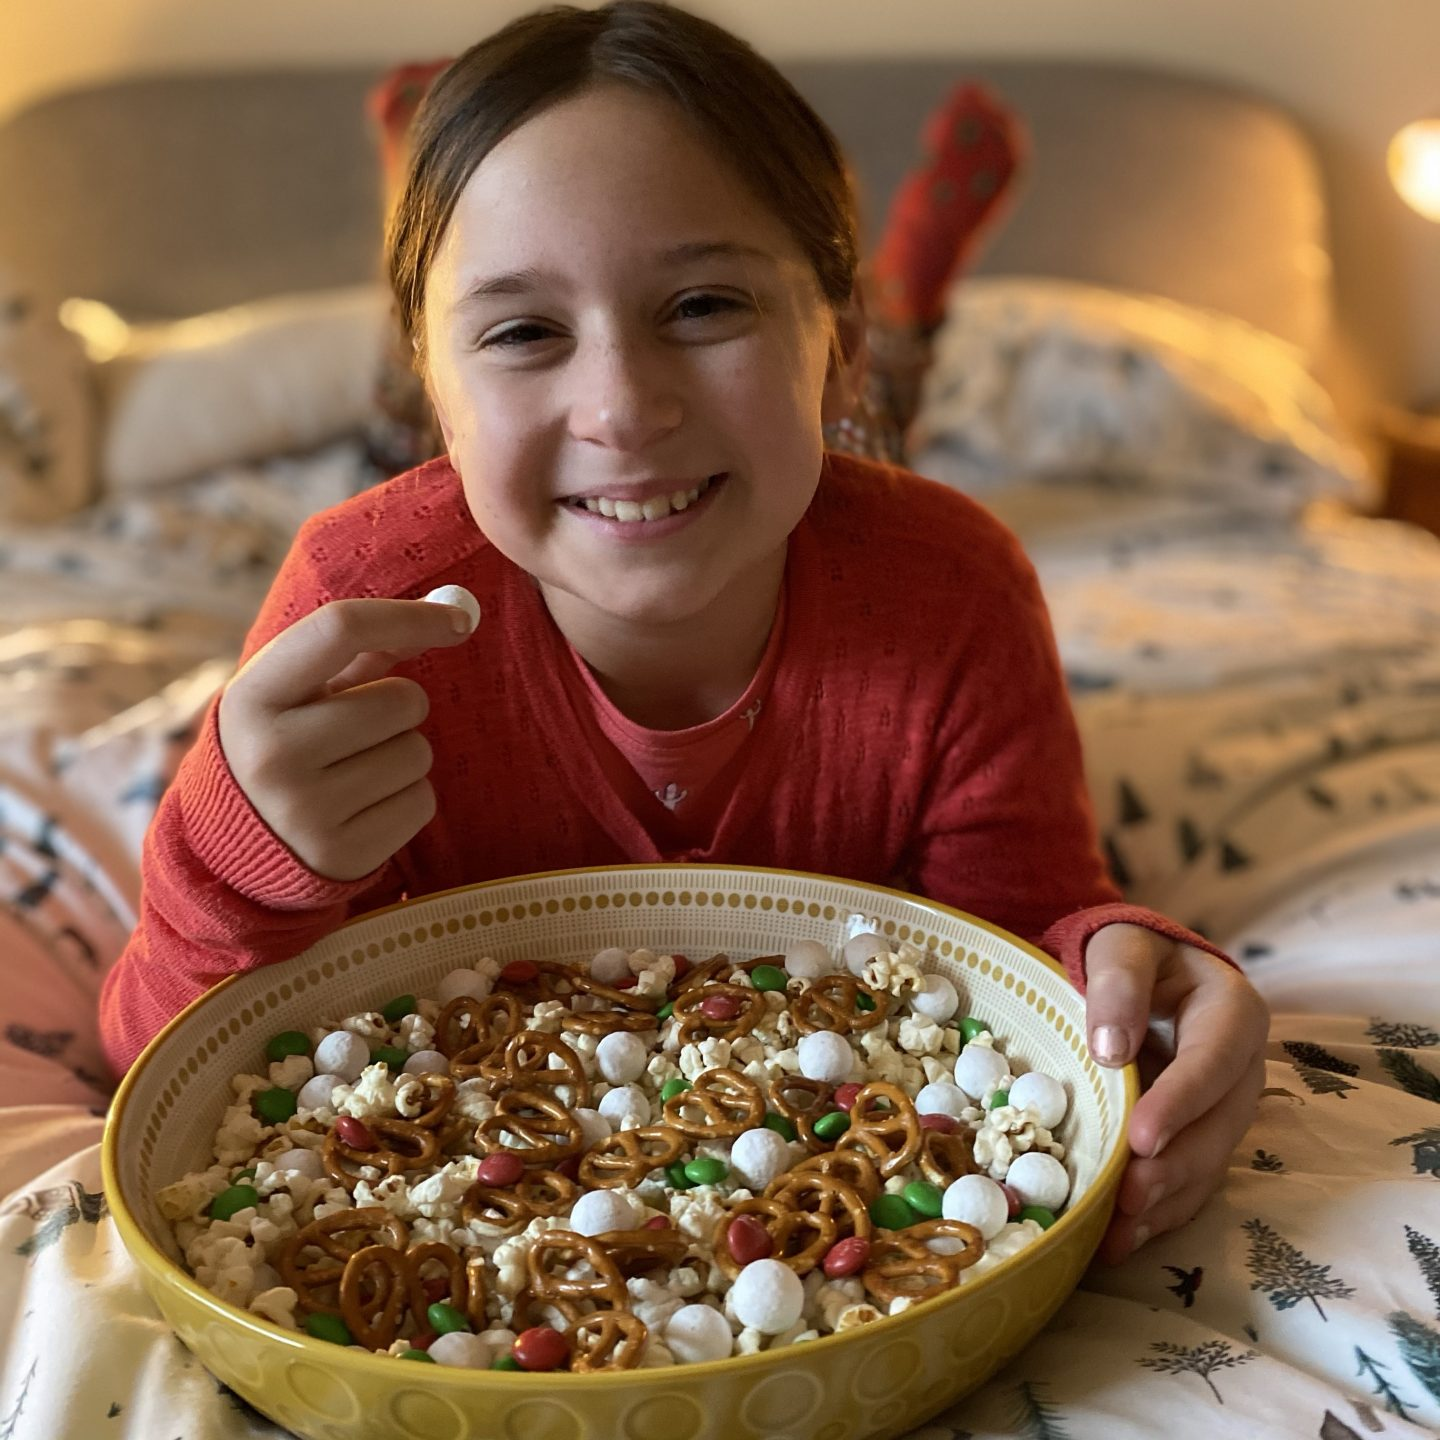 A young girl eating popcorn and snacks on a bed